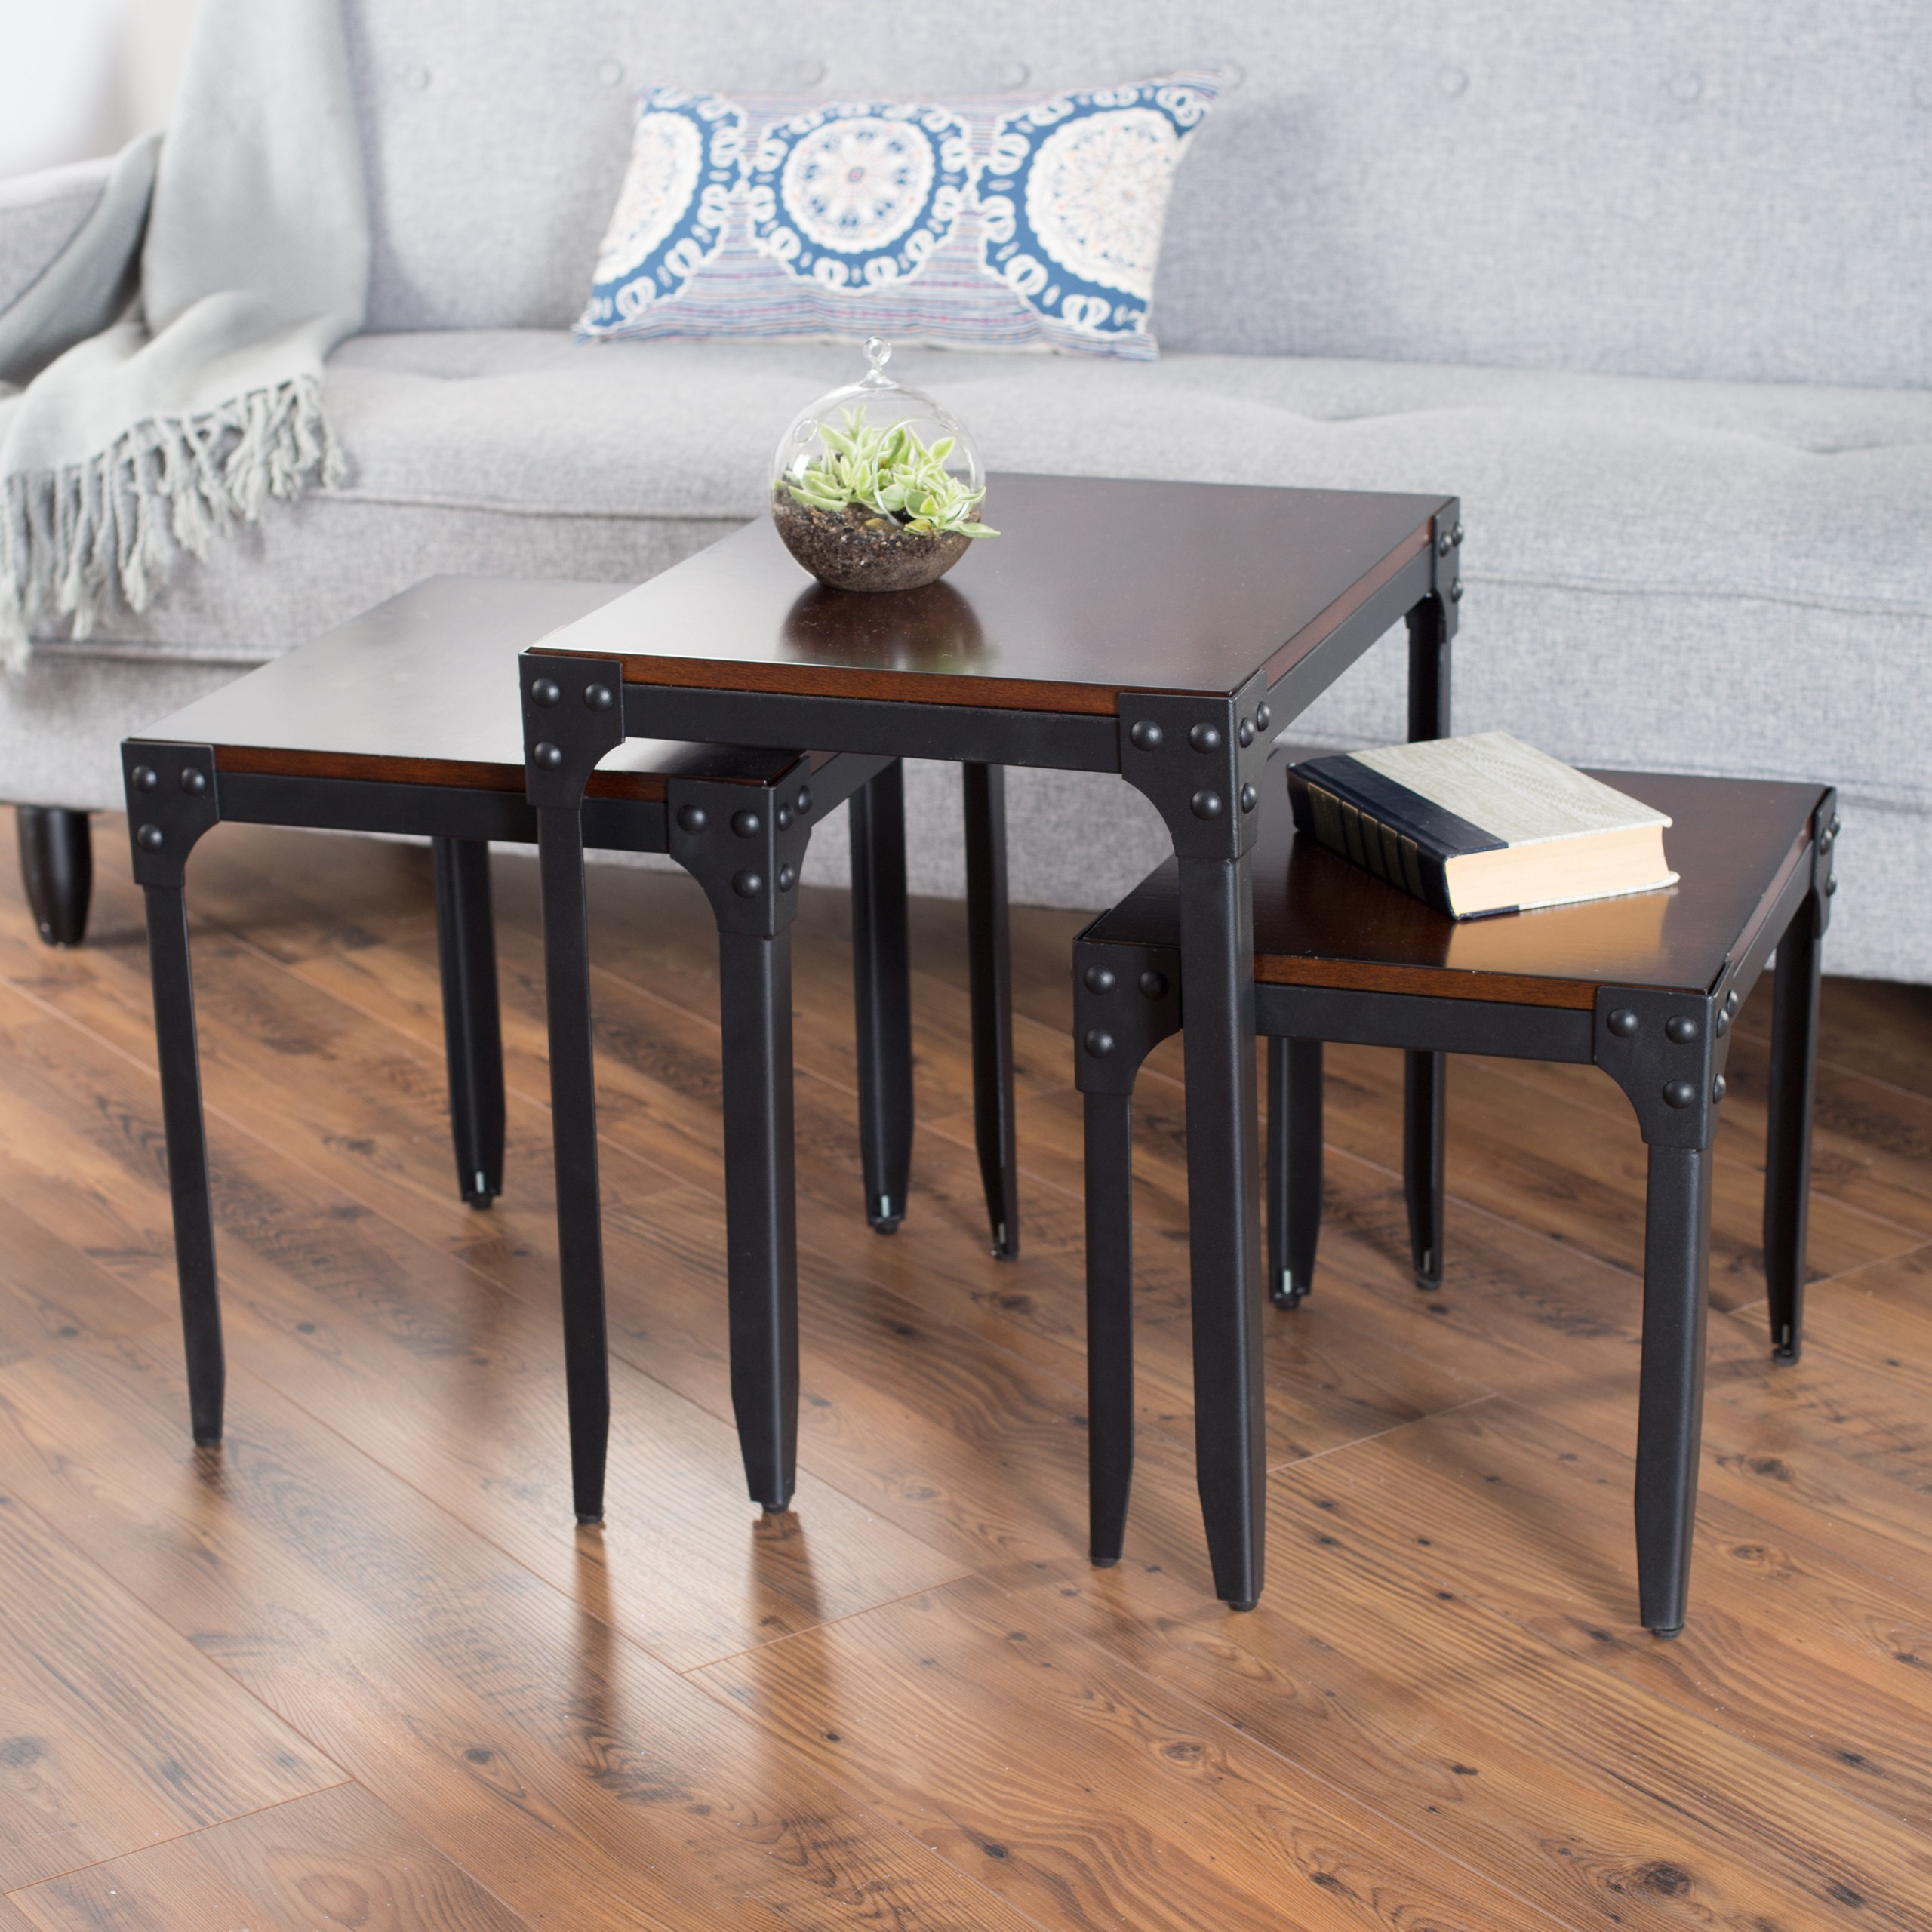 Belham Living Belham Living Trenton Industrial Nesting Table Set Wood Top & Small Size Coffee Tables - Foter